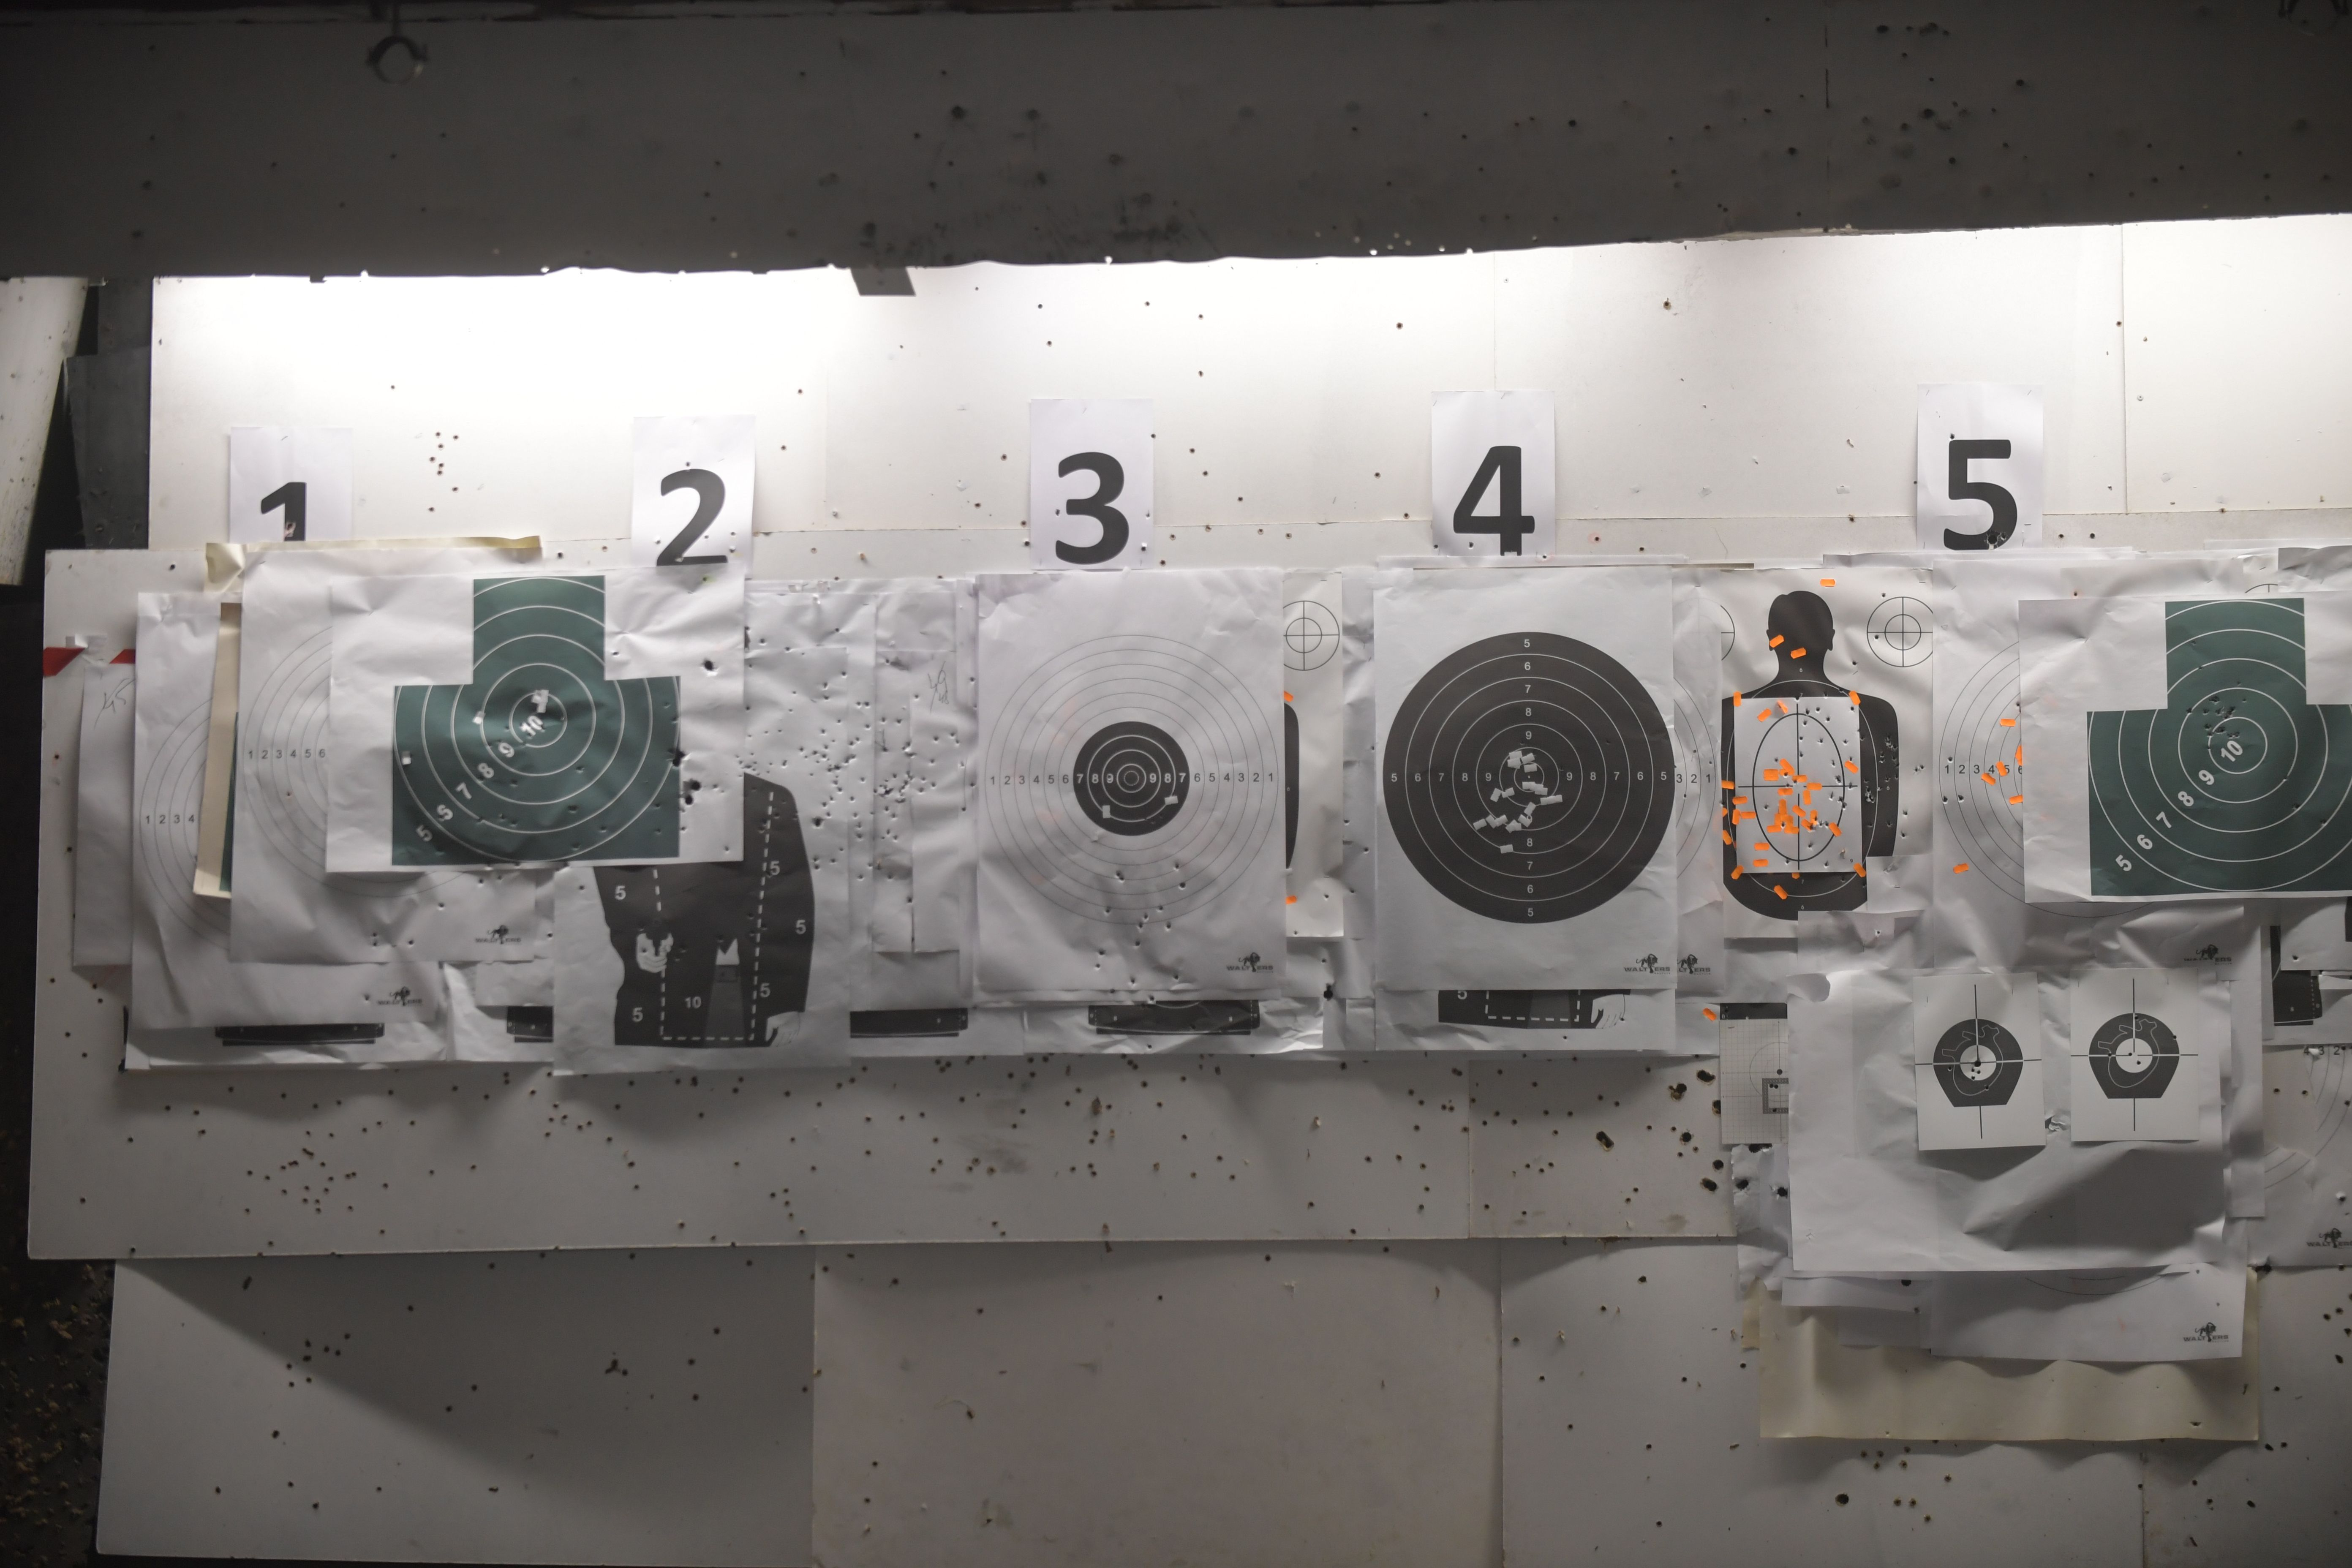 riga shooting range